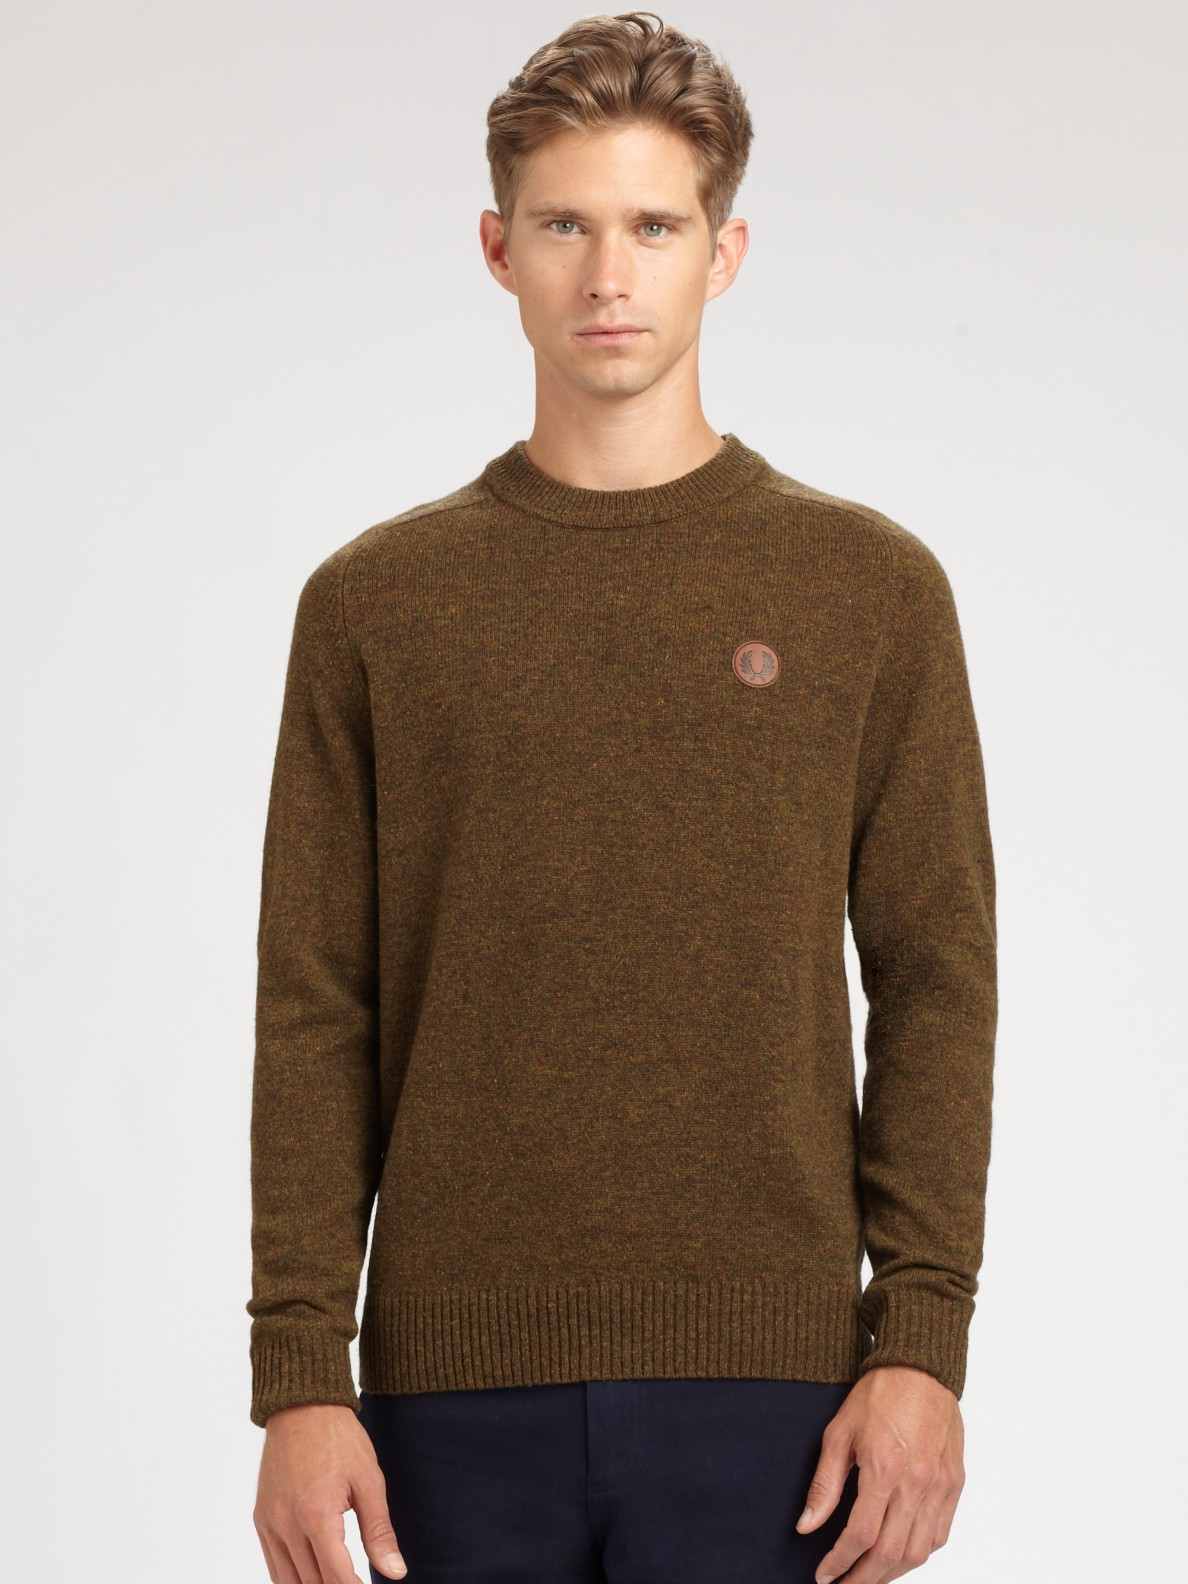 fred perry tweed crewneck sweater in brown for men lyst. Black Bedroom Furniture Sets. Home Design Ideas